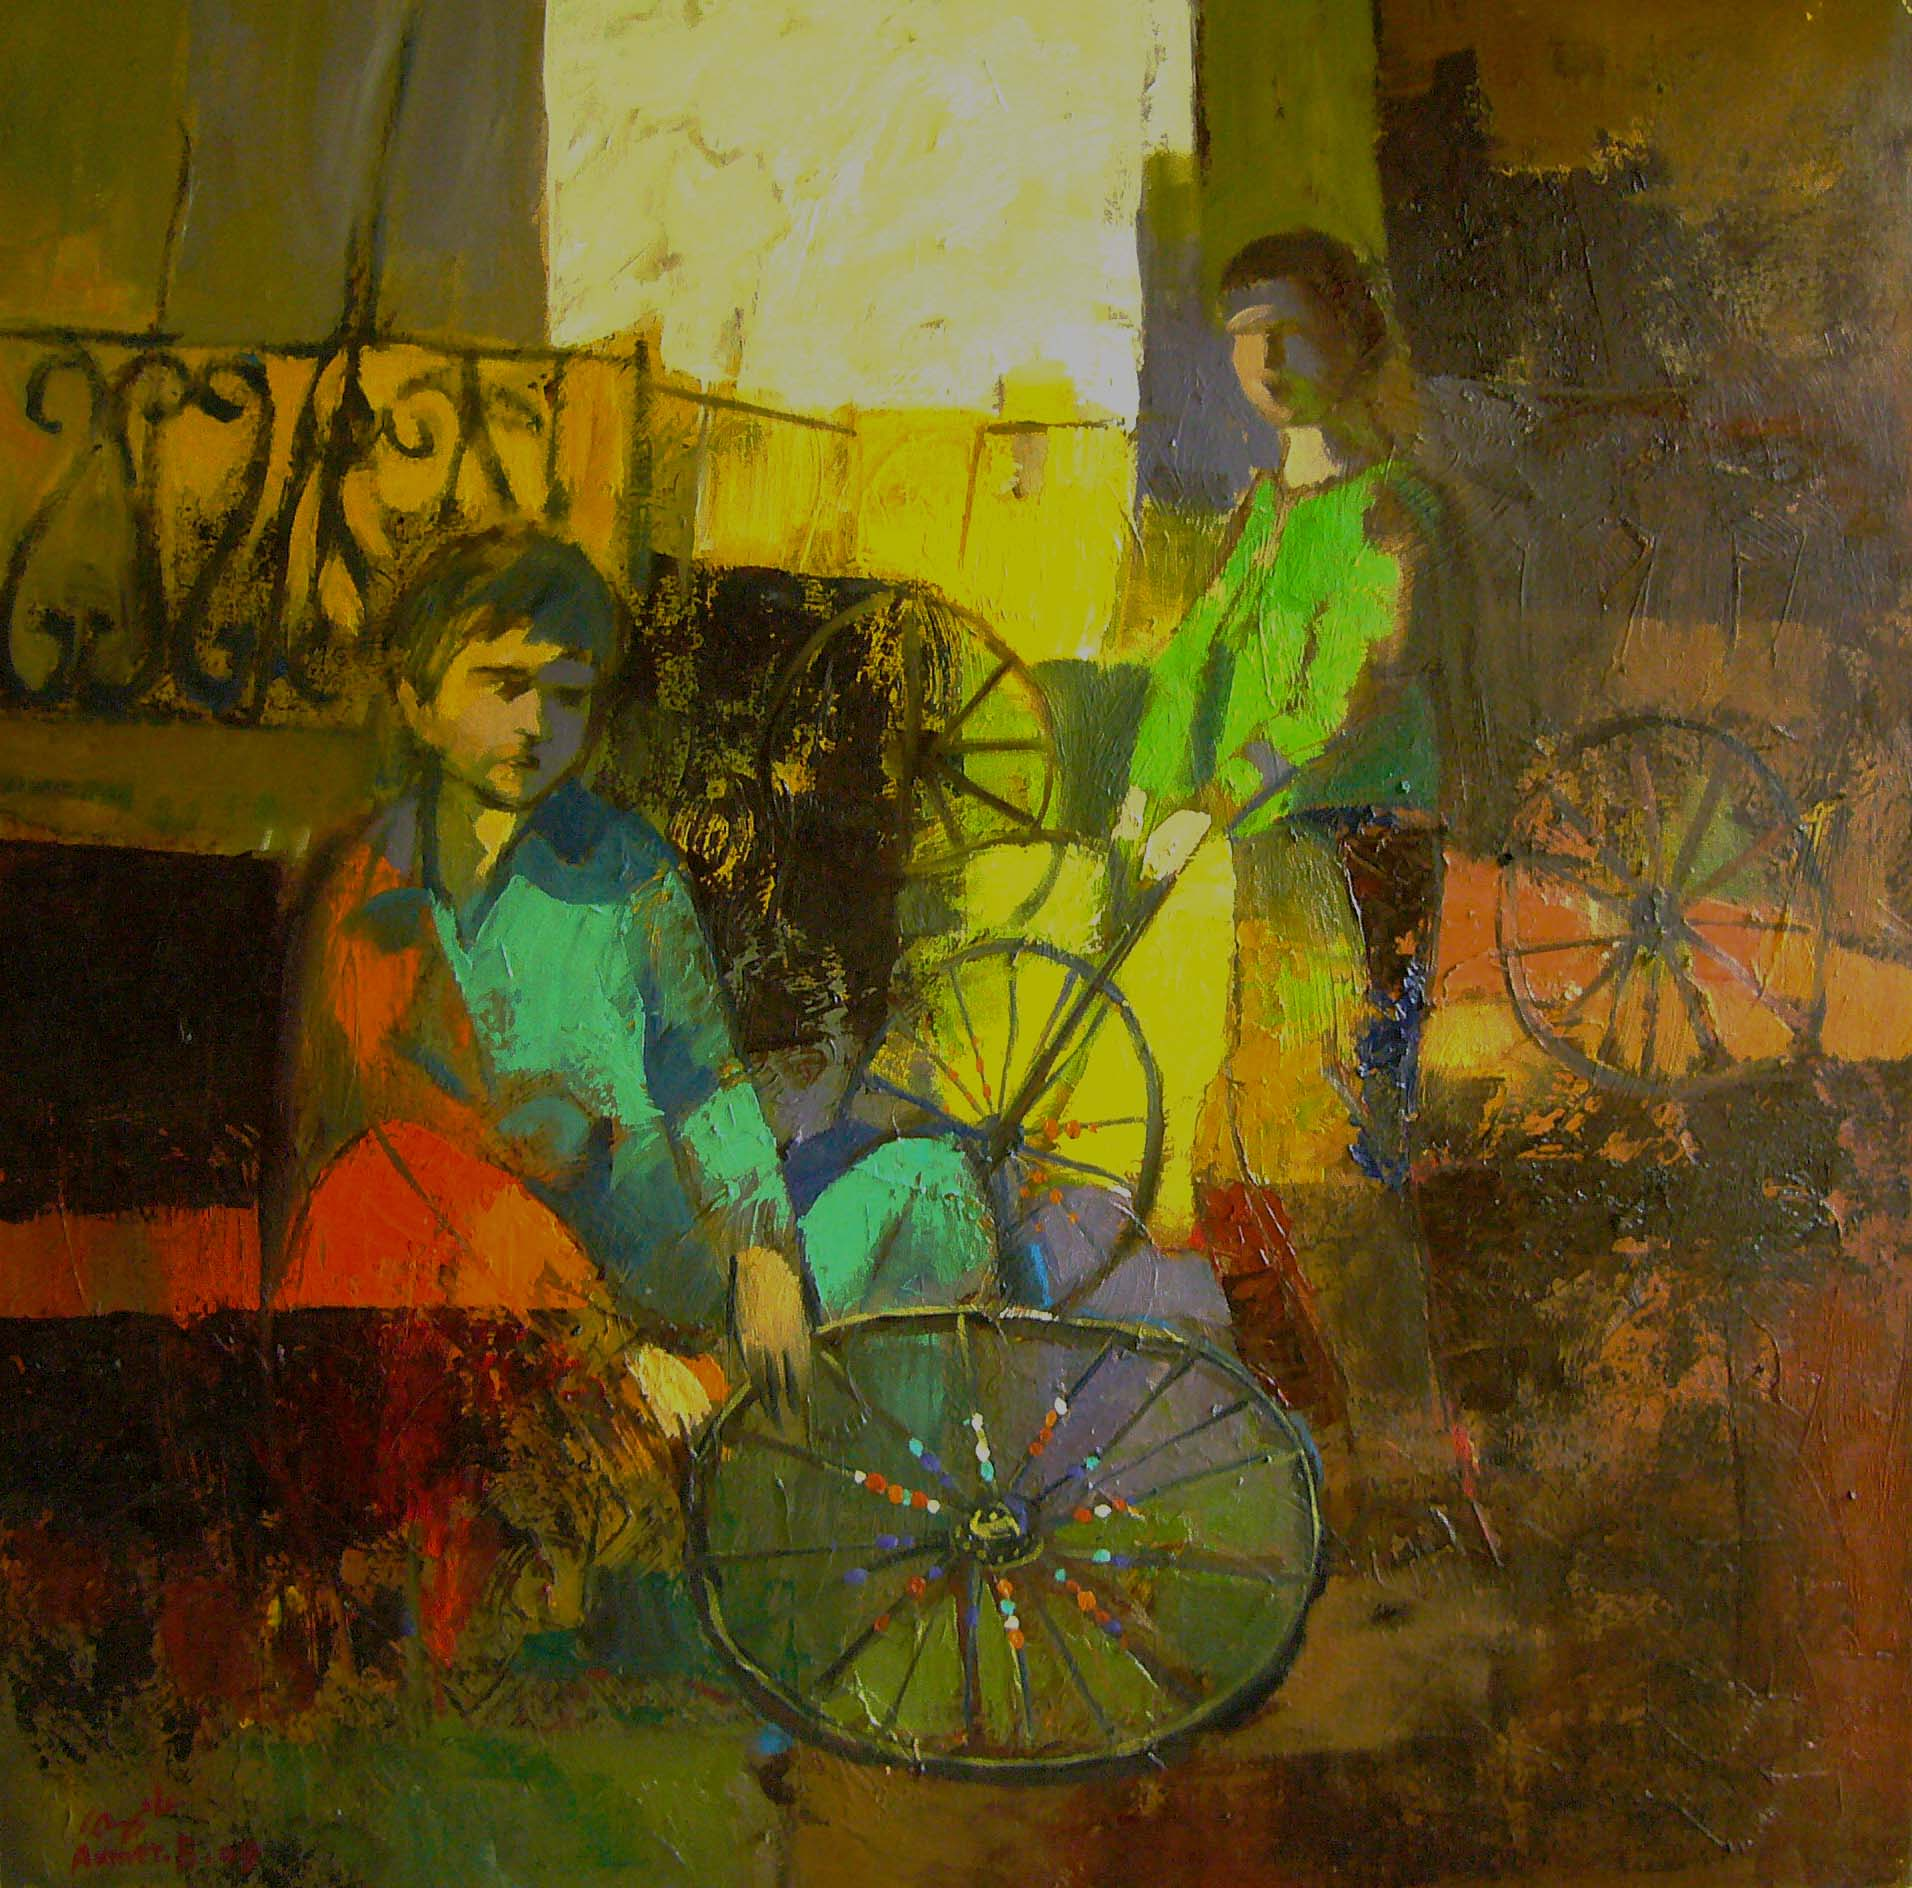 80 x 80 cm . Oil on canvas . 2009